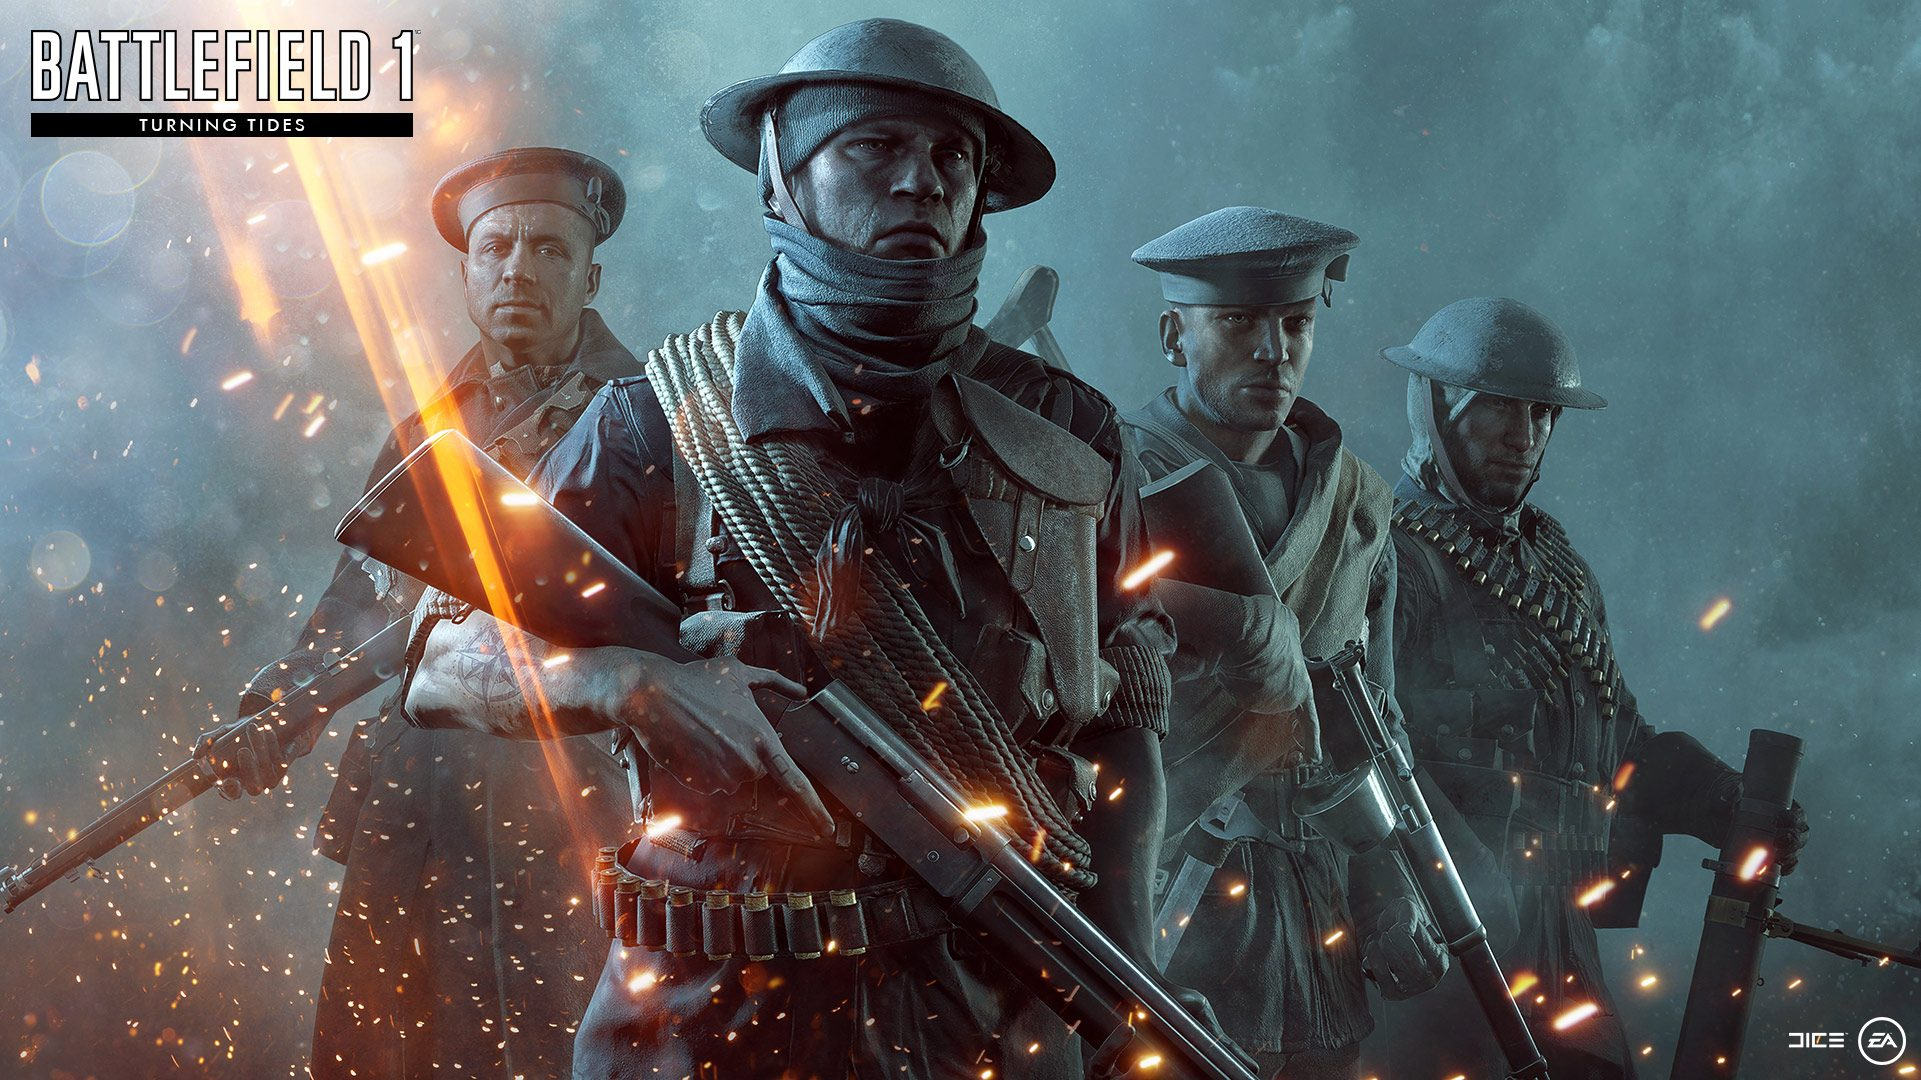 Battlefield 5 reveal appears to be on May 23 according to